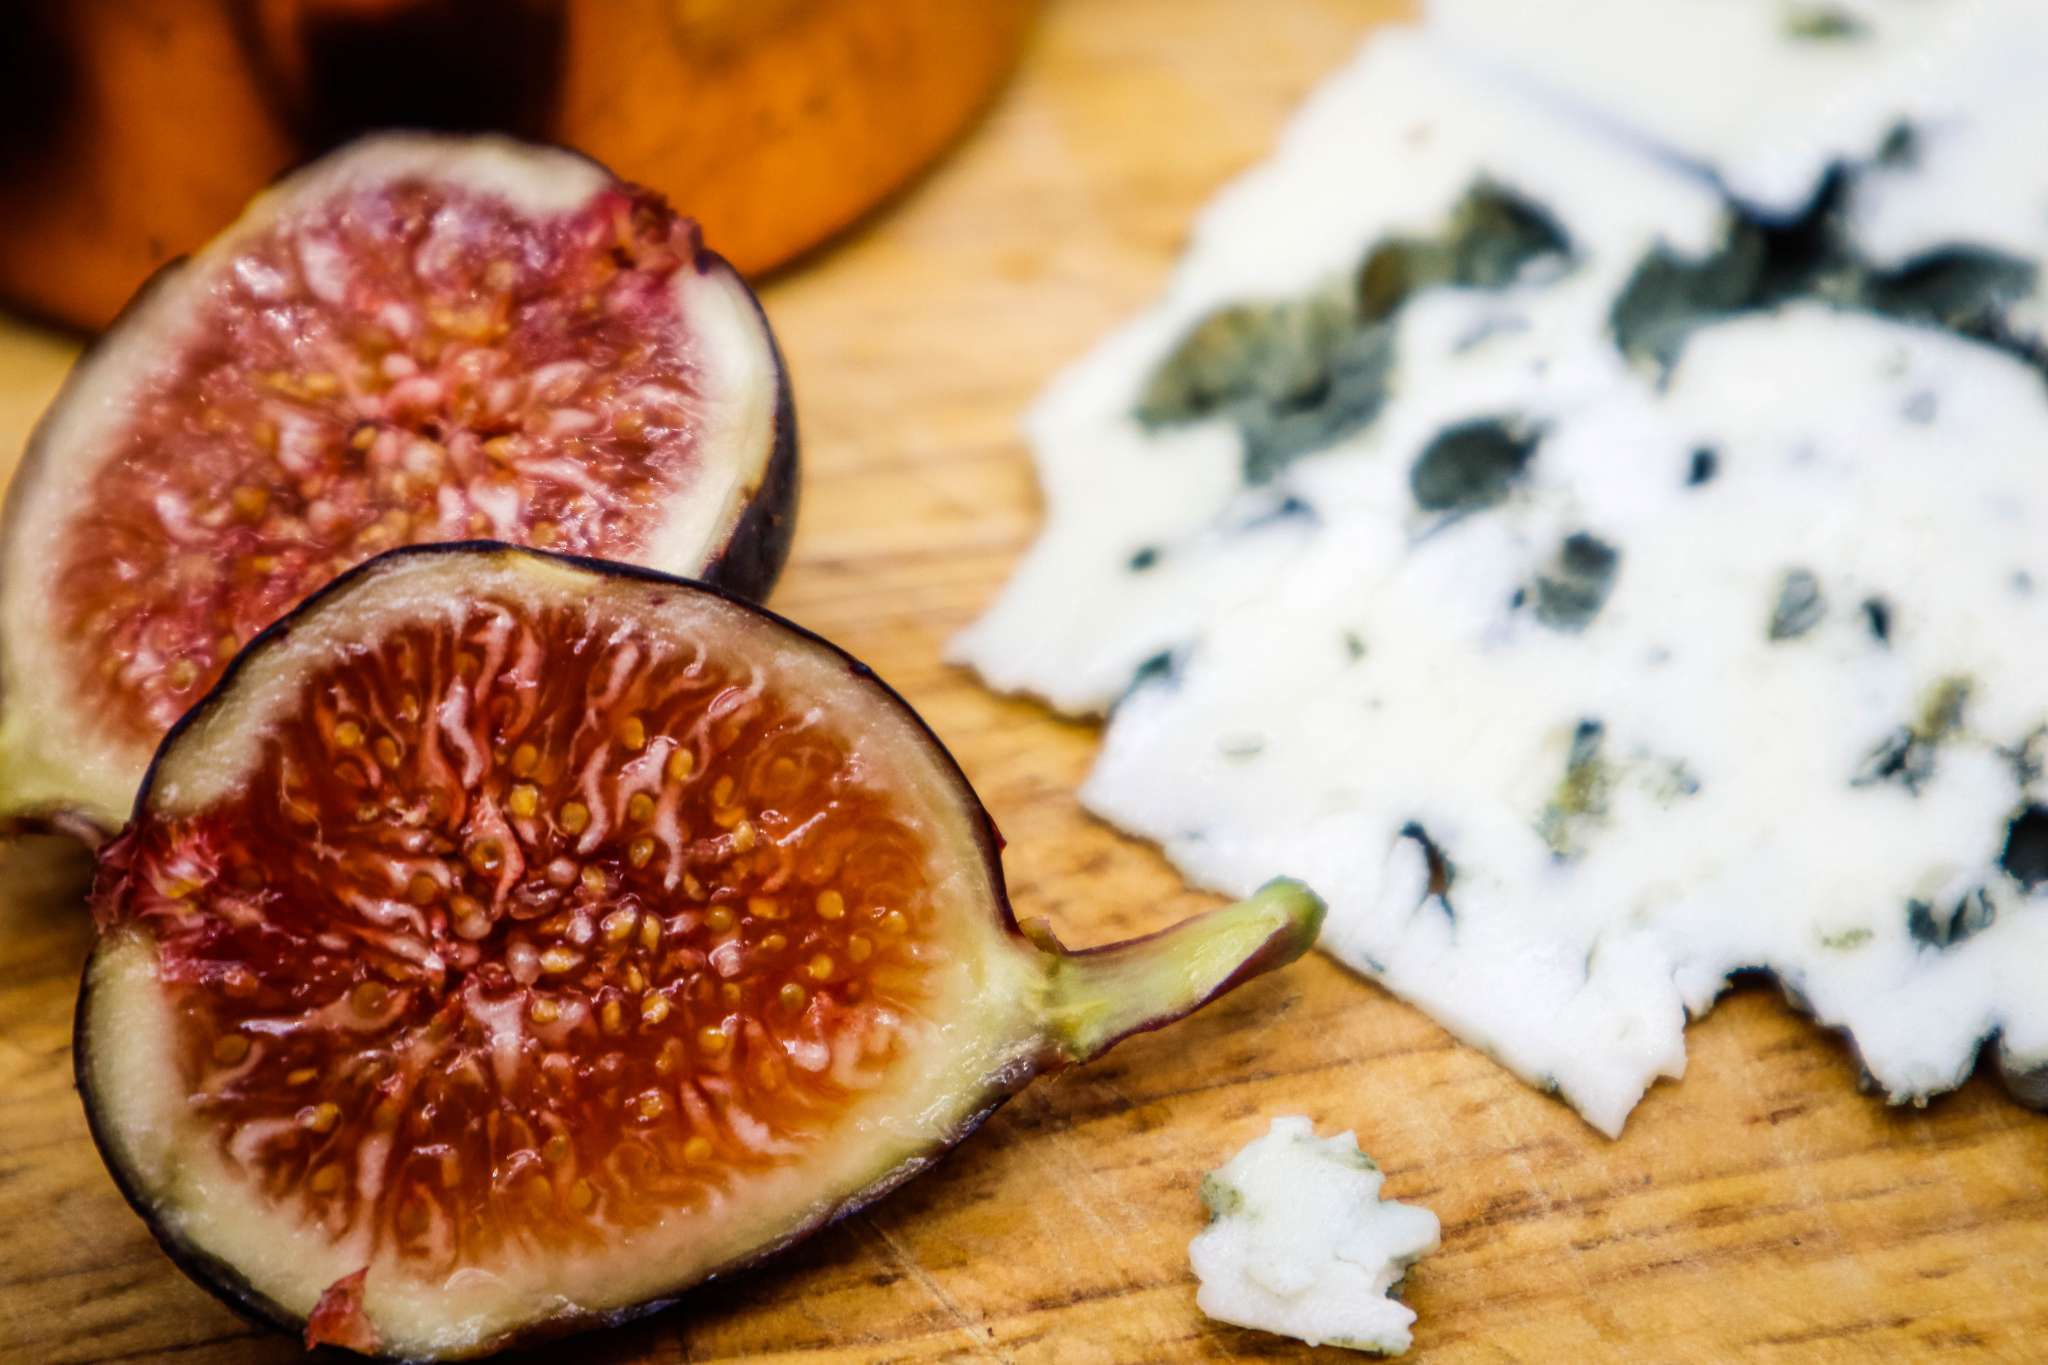 seasonal treat roasted figs with roquefort and honey picture of fresh figs and Roquefort cheese from France Societe